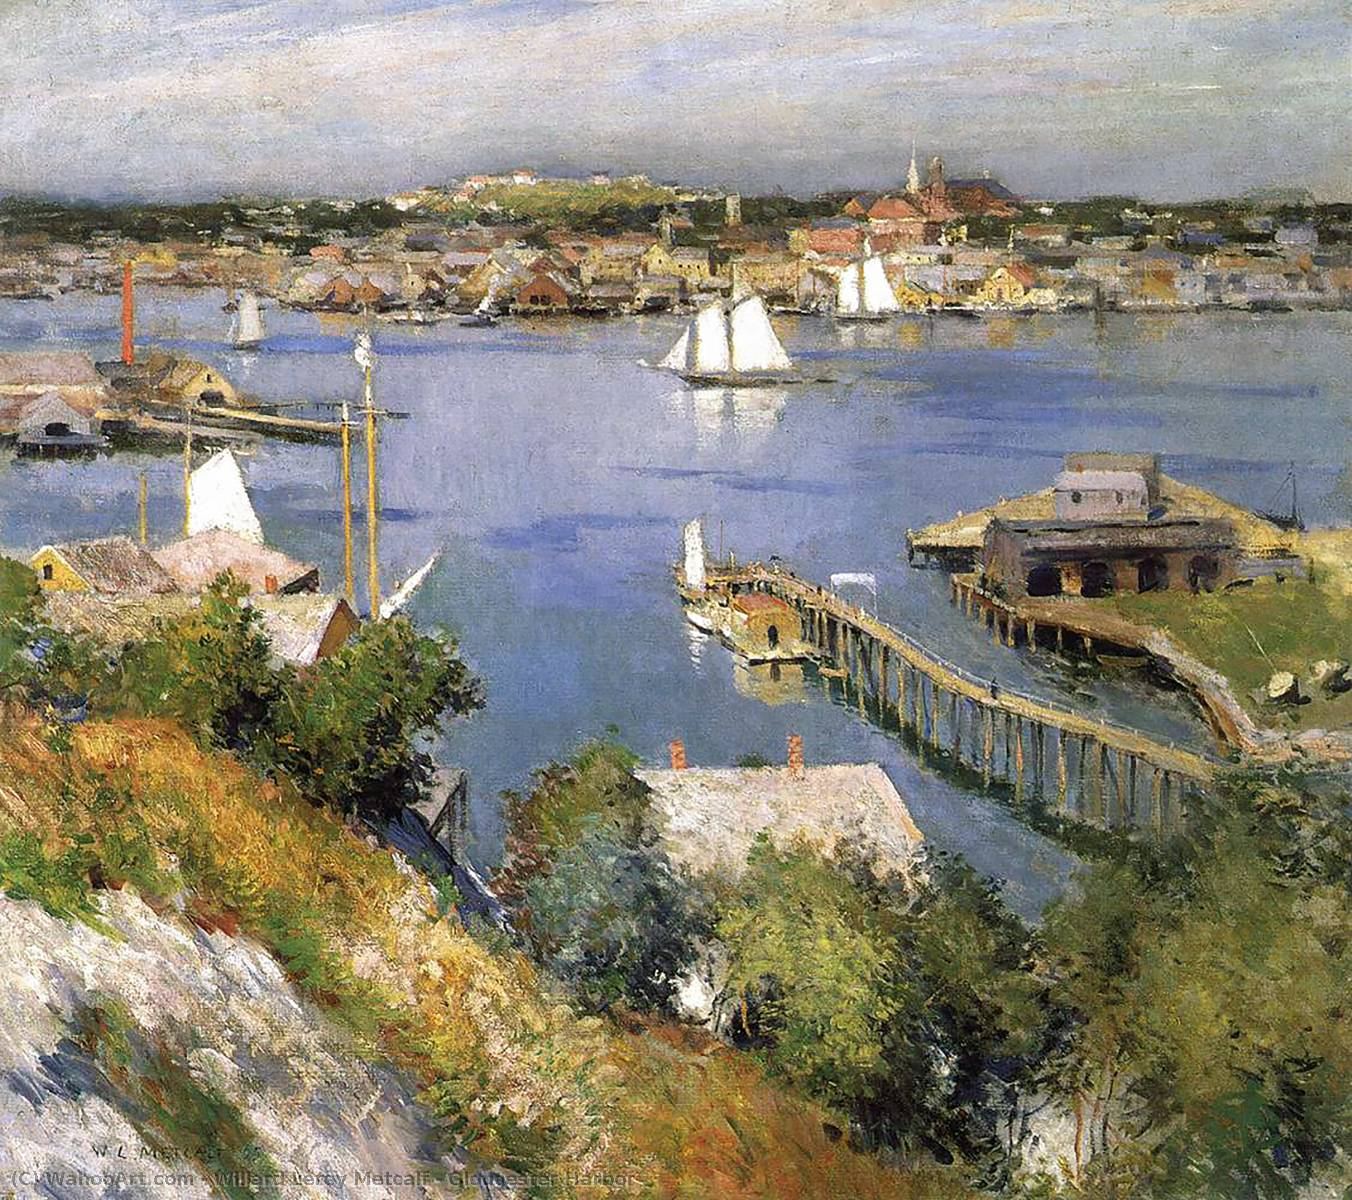 Ordinare Riproduzioni Di Belle Arti | porto di gloucester di Willard Leroy Metcalf | Most-Famous-Paintings.com